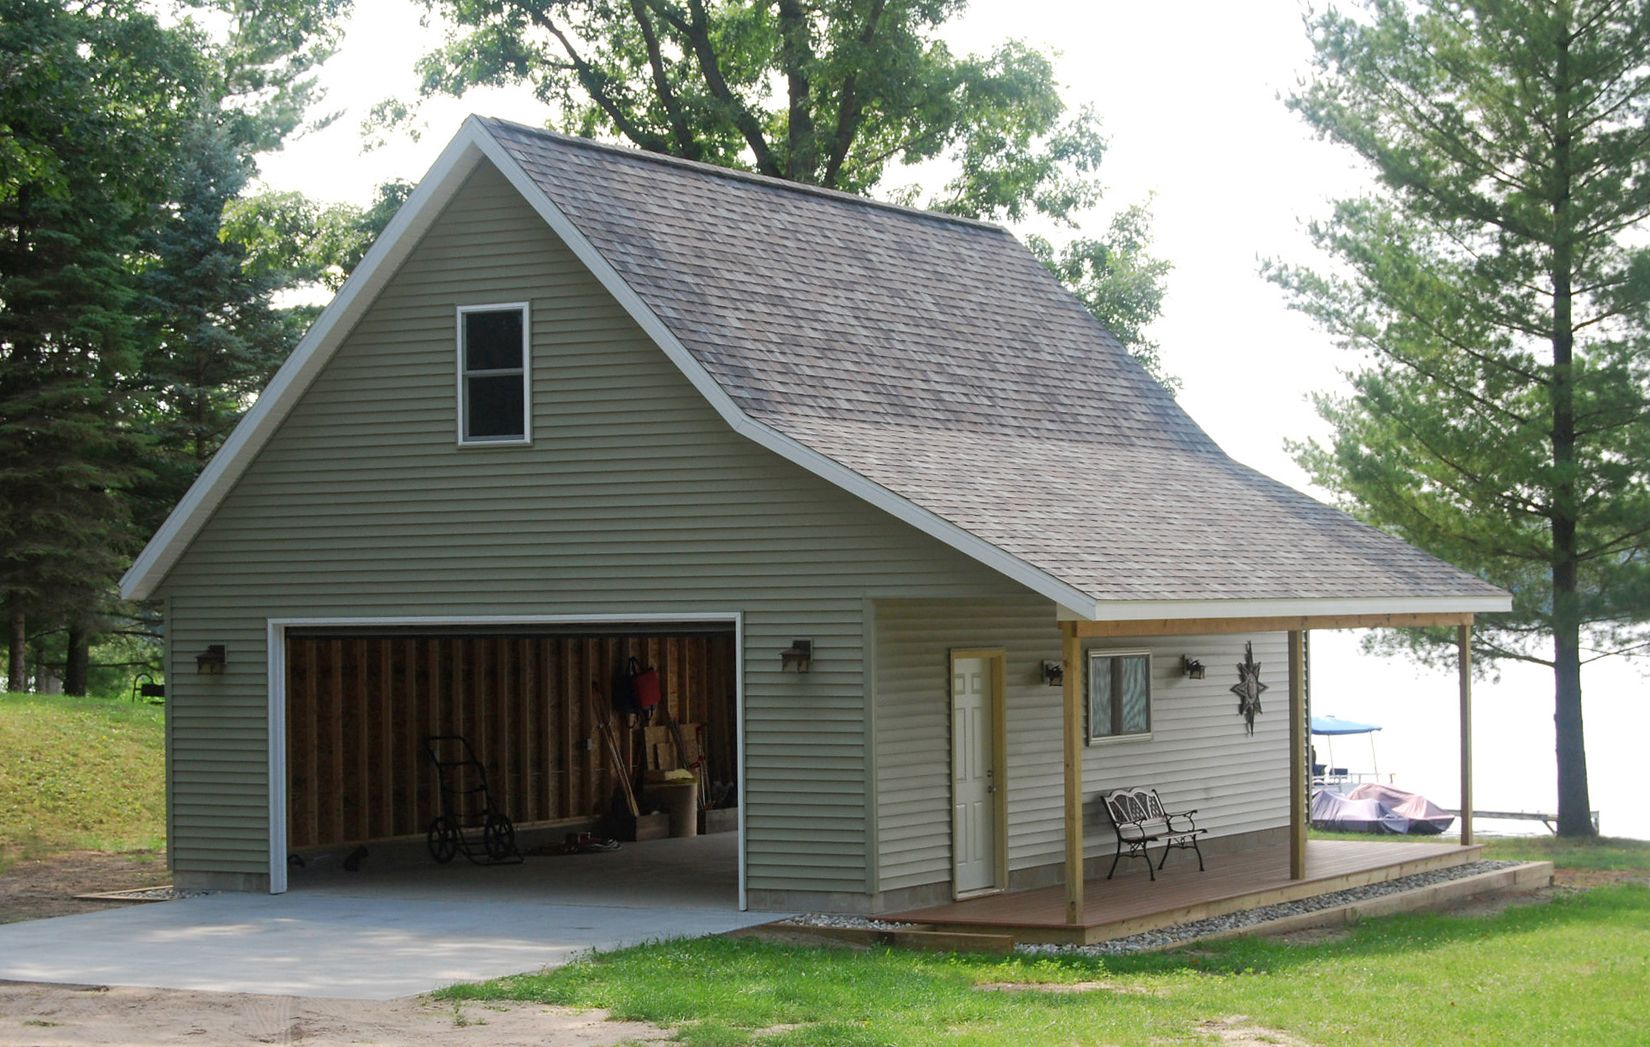 Pole barn garage plans welcome to jb custom homes where for Pole barns with apartments